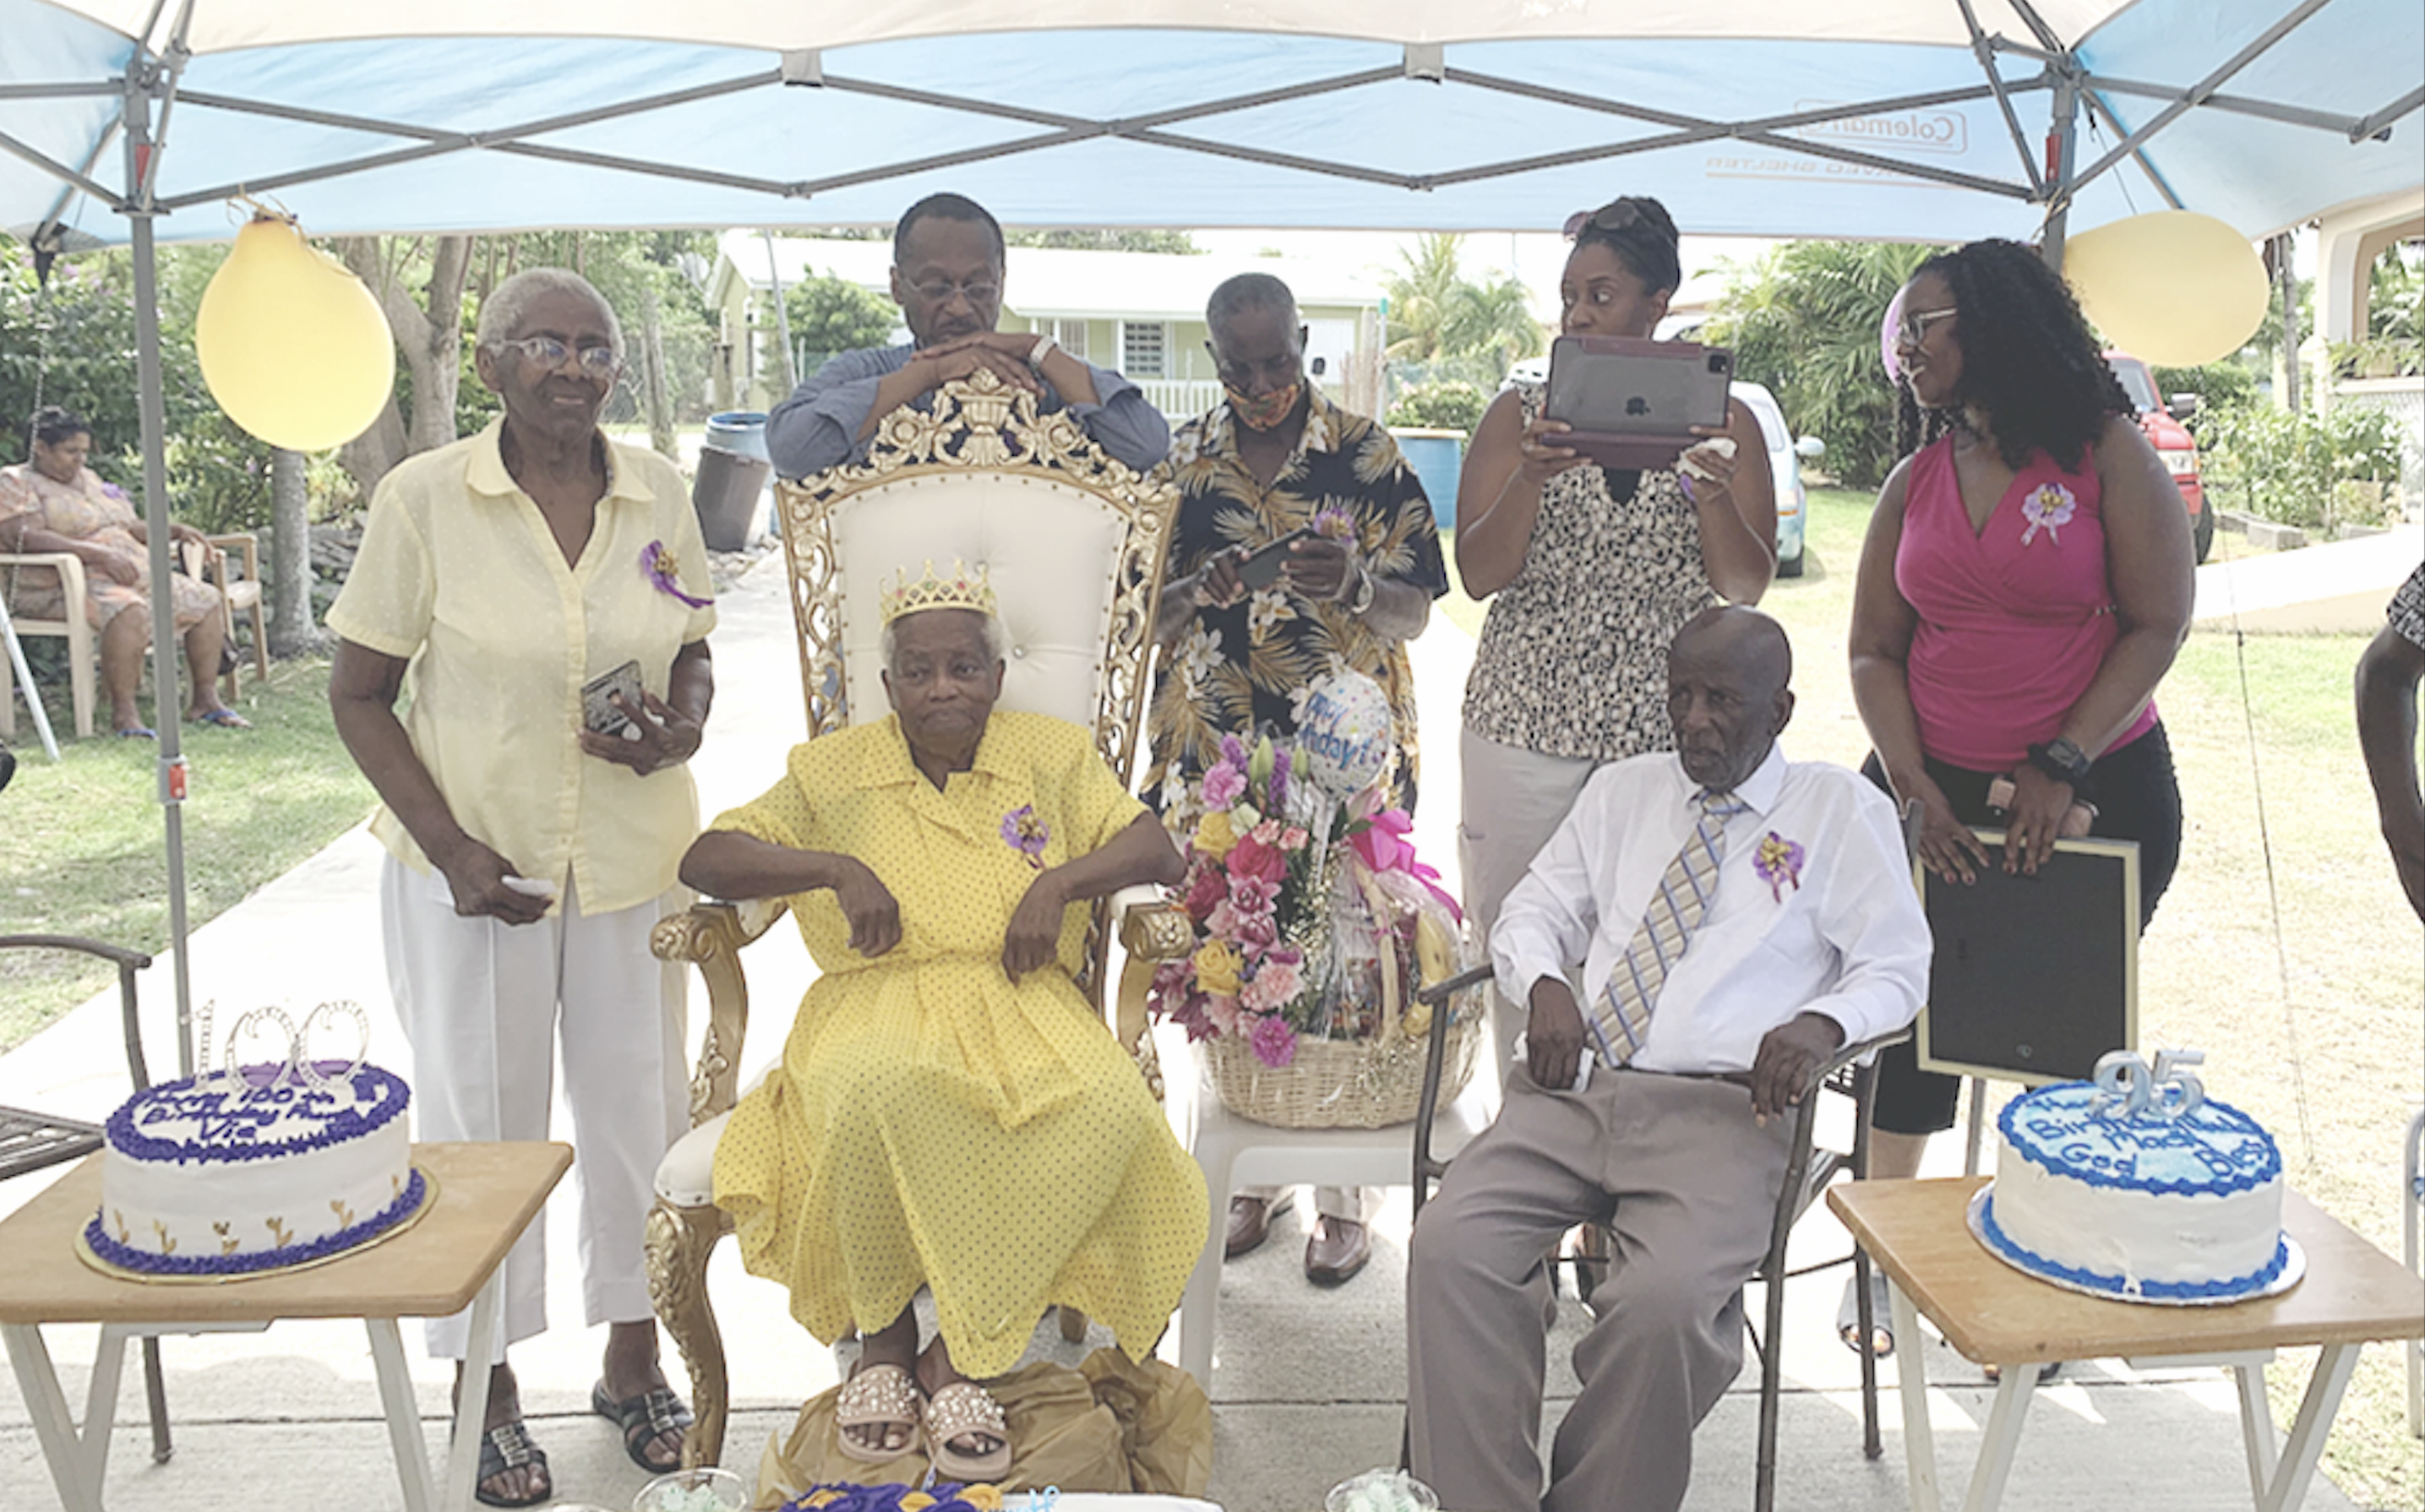 In St. Croix, Adventists Celebrate Life of Centenarian Member